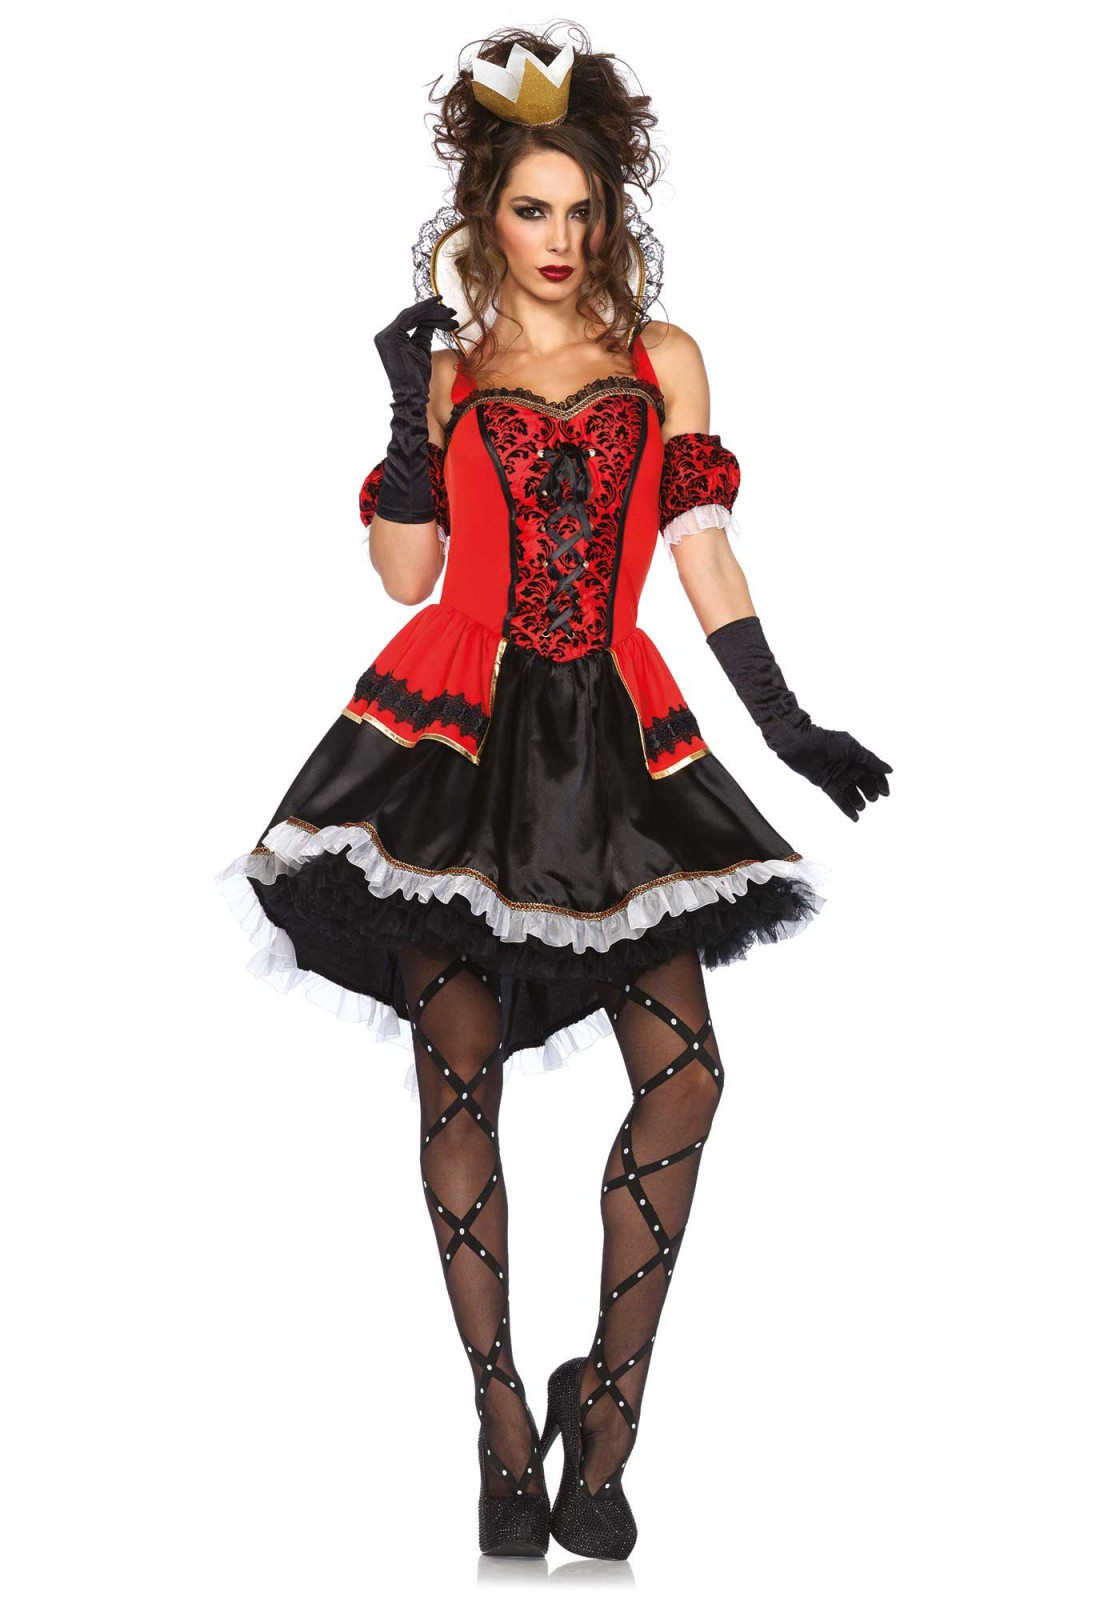 Of course you are the most seductive ruler in the world. This 3PC queen costume includes high/low satin and brocade halter dress with woven ribbon venetian lace trim, matching arm puffs and crown headband. Please take note that the petticoat, stockings and gloves are not included. The length of size Small, measured from the shoulder is 82 cm/ 32 inch at the front and 108 cm/ 43 inch at the backside. The model has a length of 178 cm/ 70 inch and is wearing a size S.